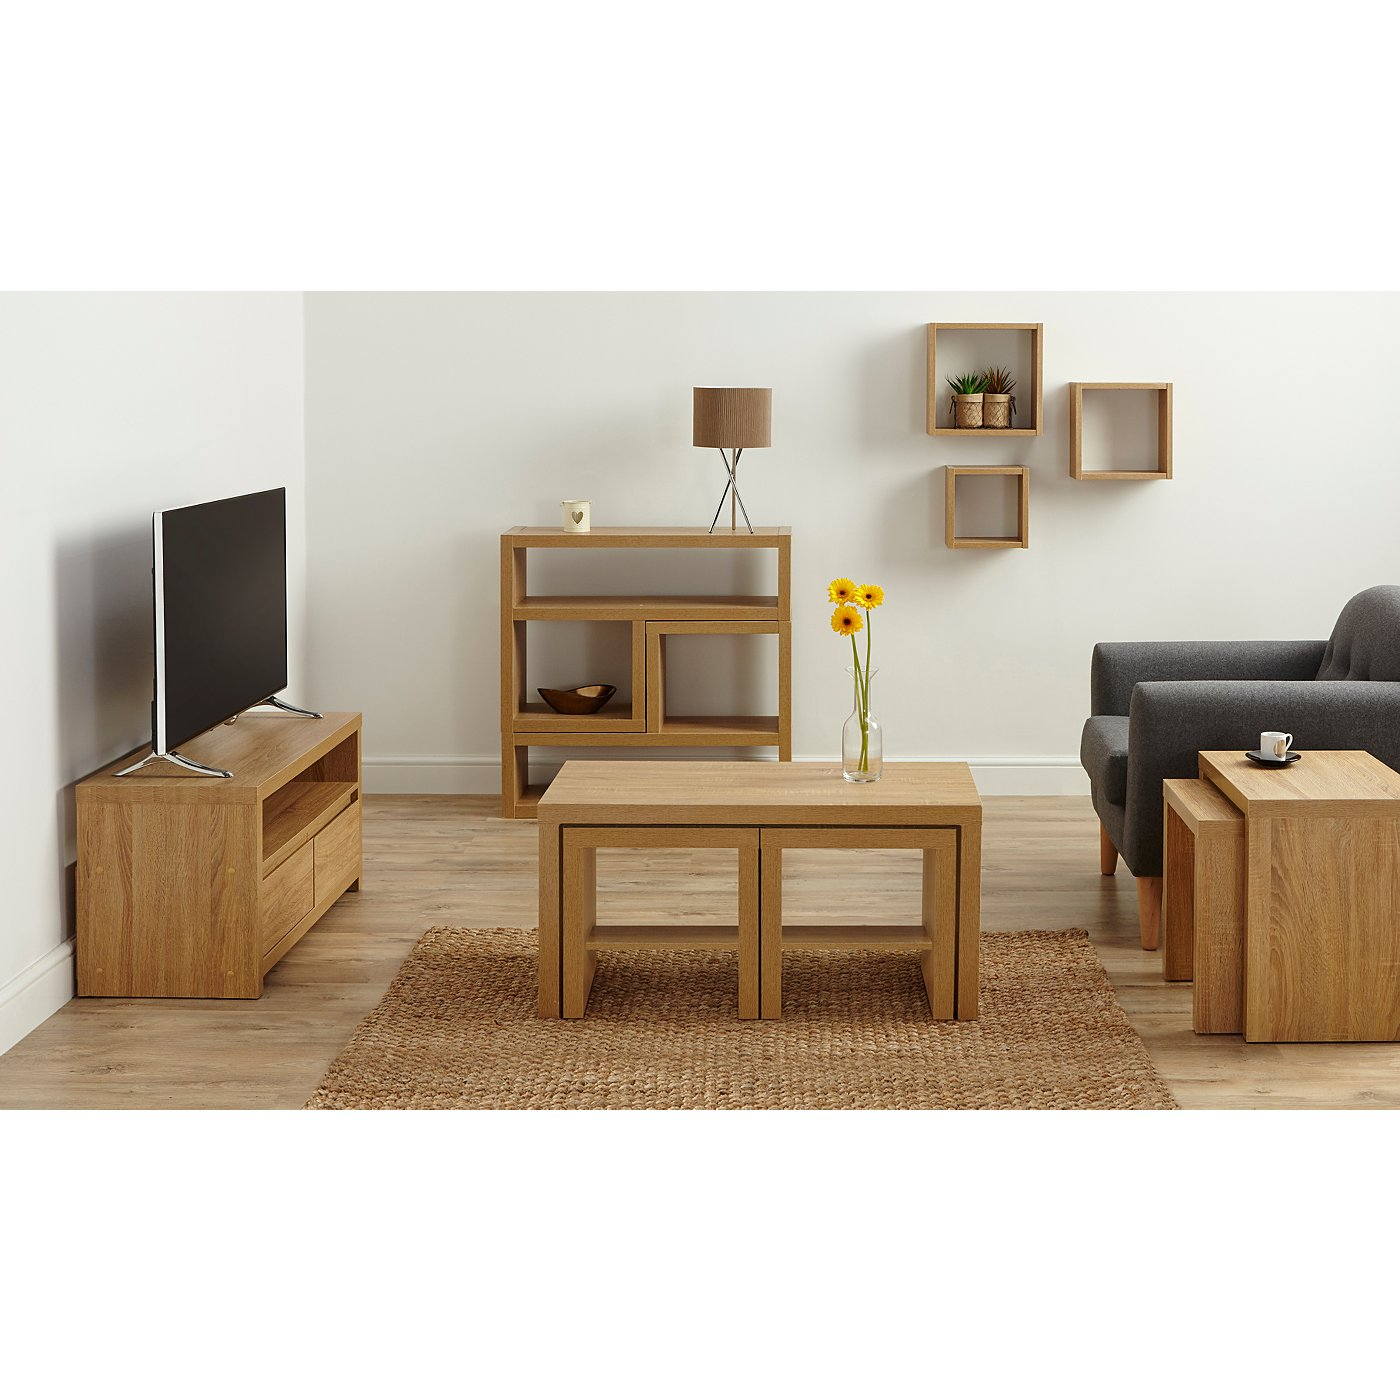 Oak effect living room furniture sets living room for Living room furniture companies